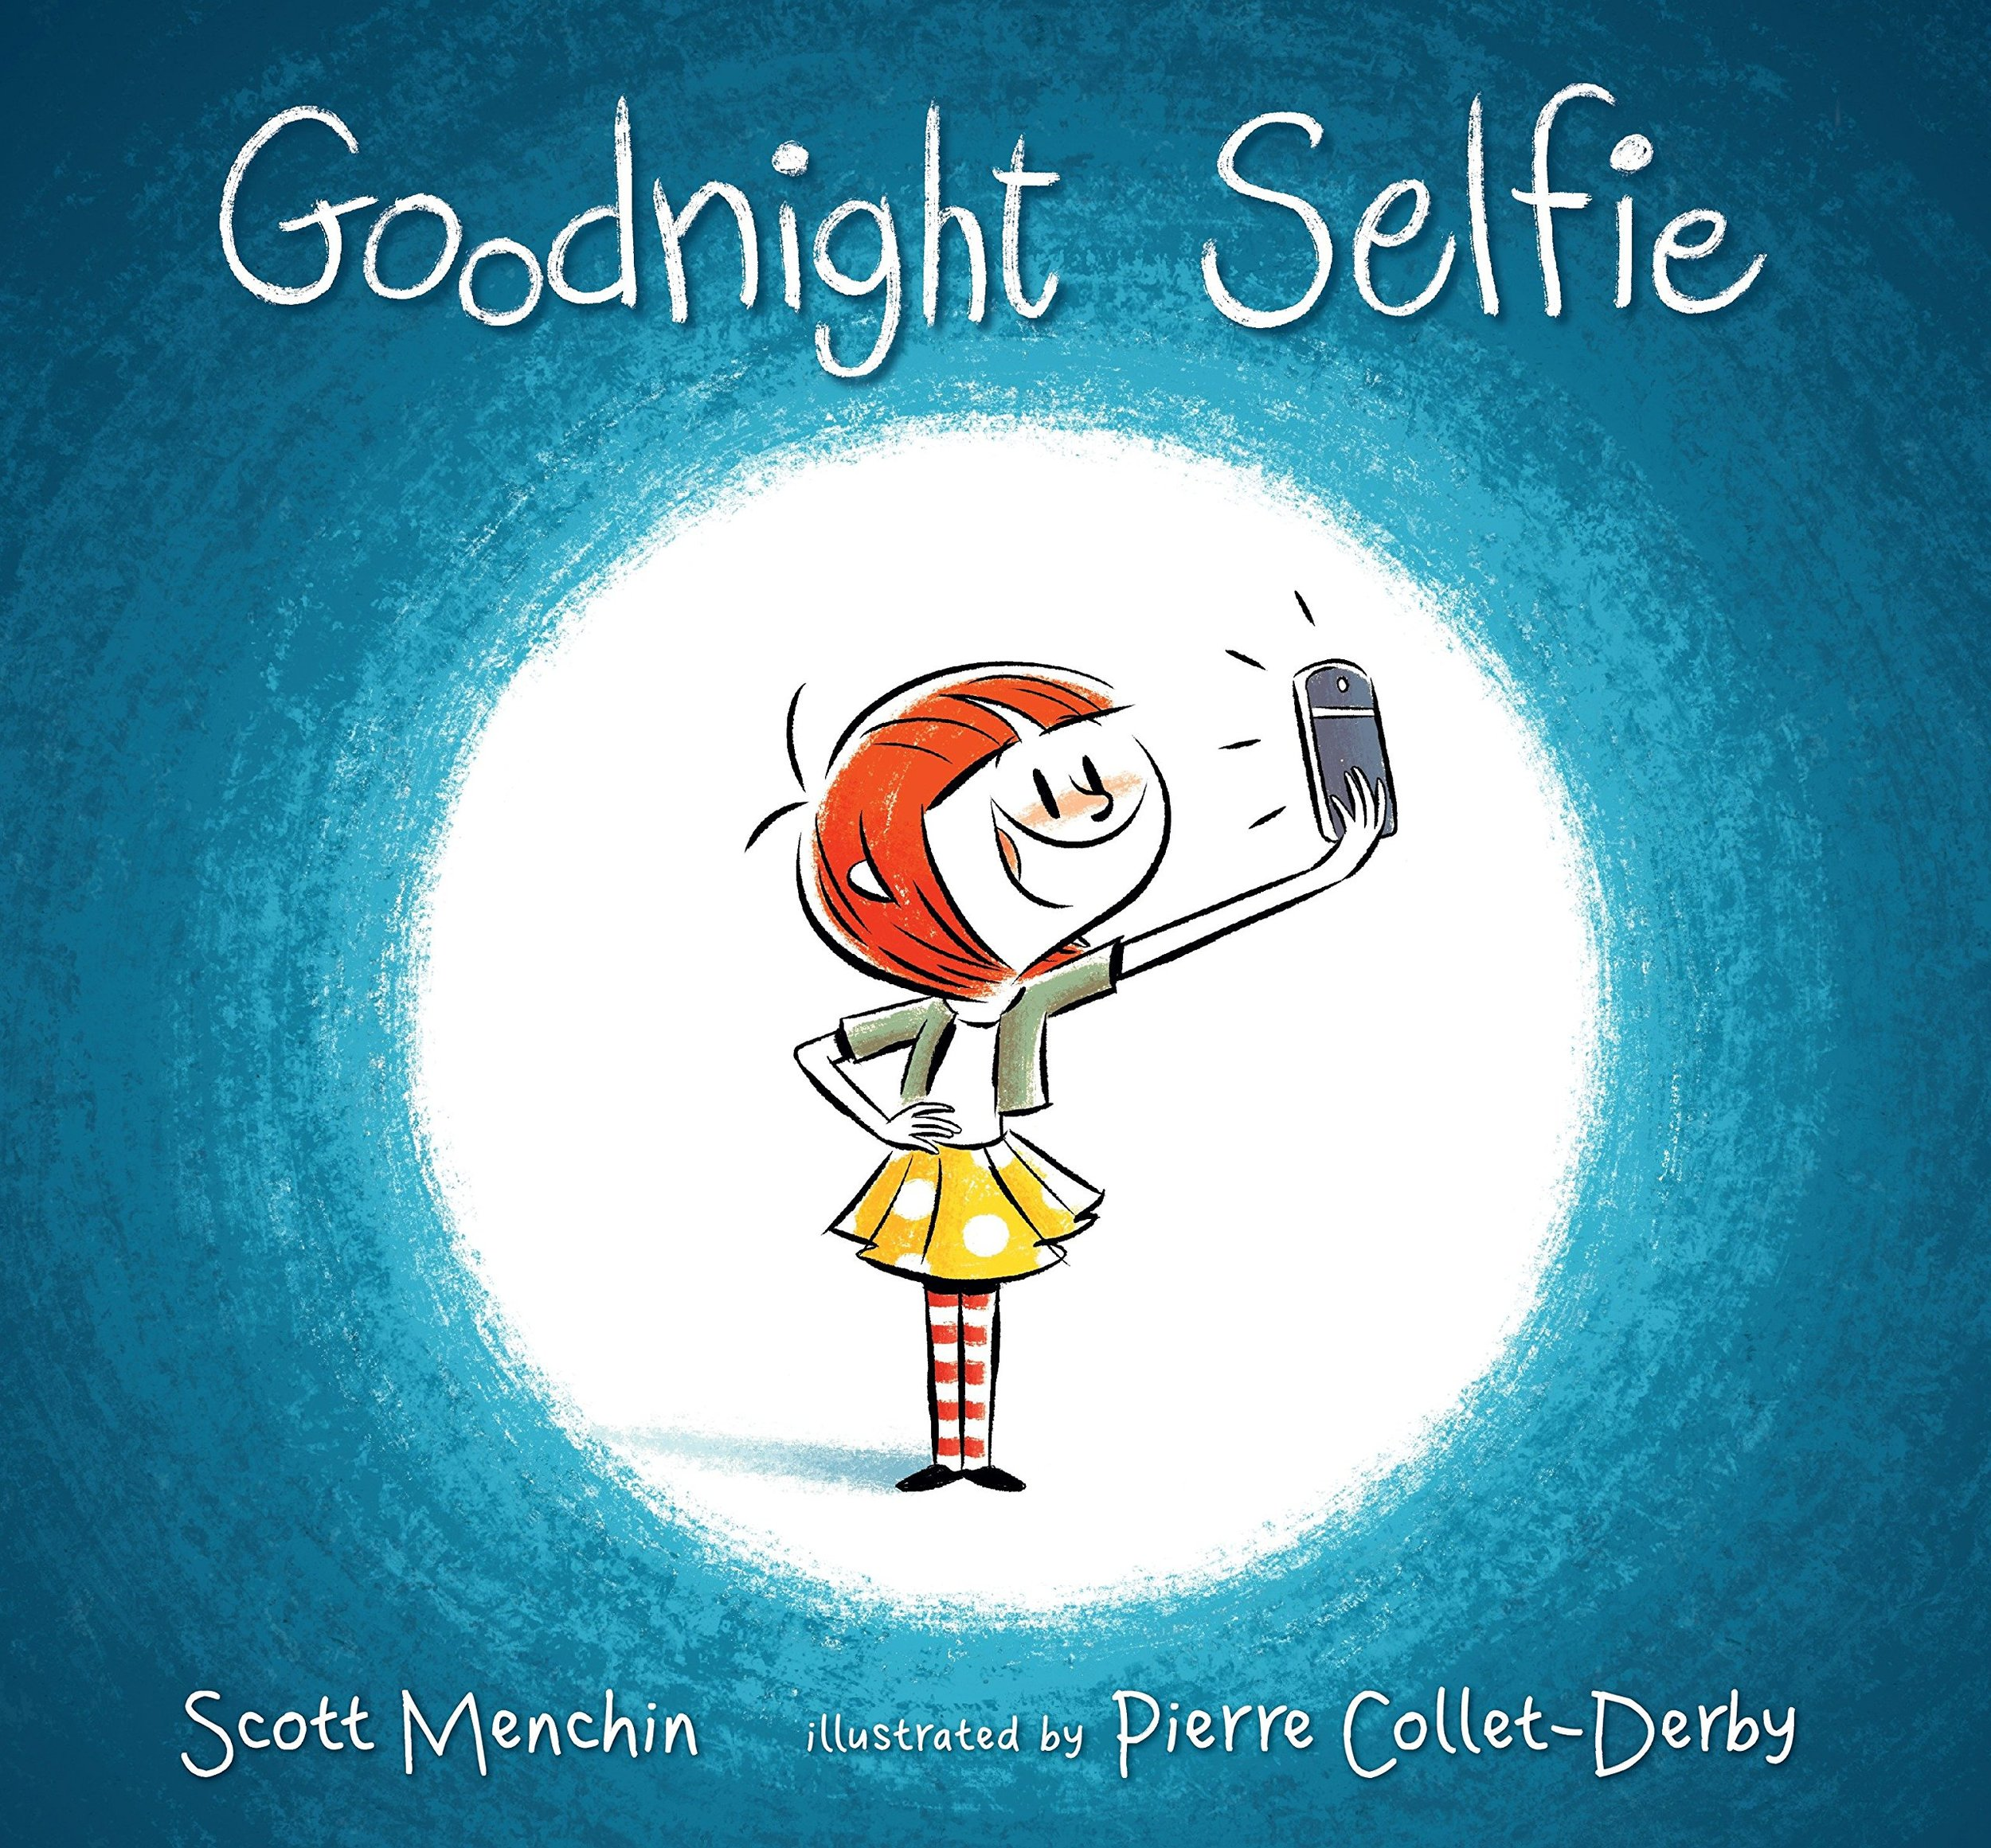 - After receiving a hand-me-down camera phone, the art of selfie taking leads to adventures and photos of everything. But at the end of the day kids needs to recharge their batteries too!